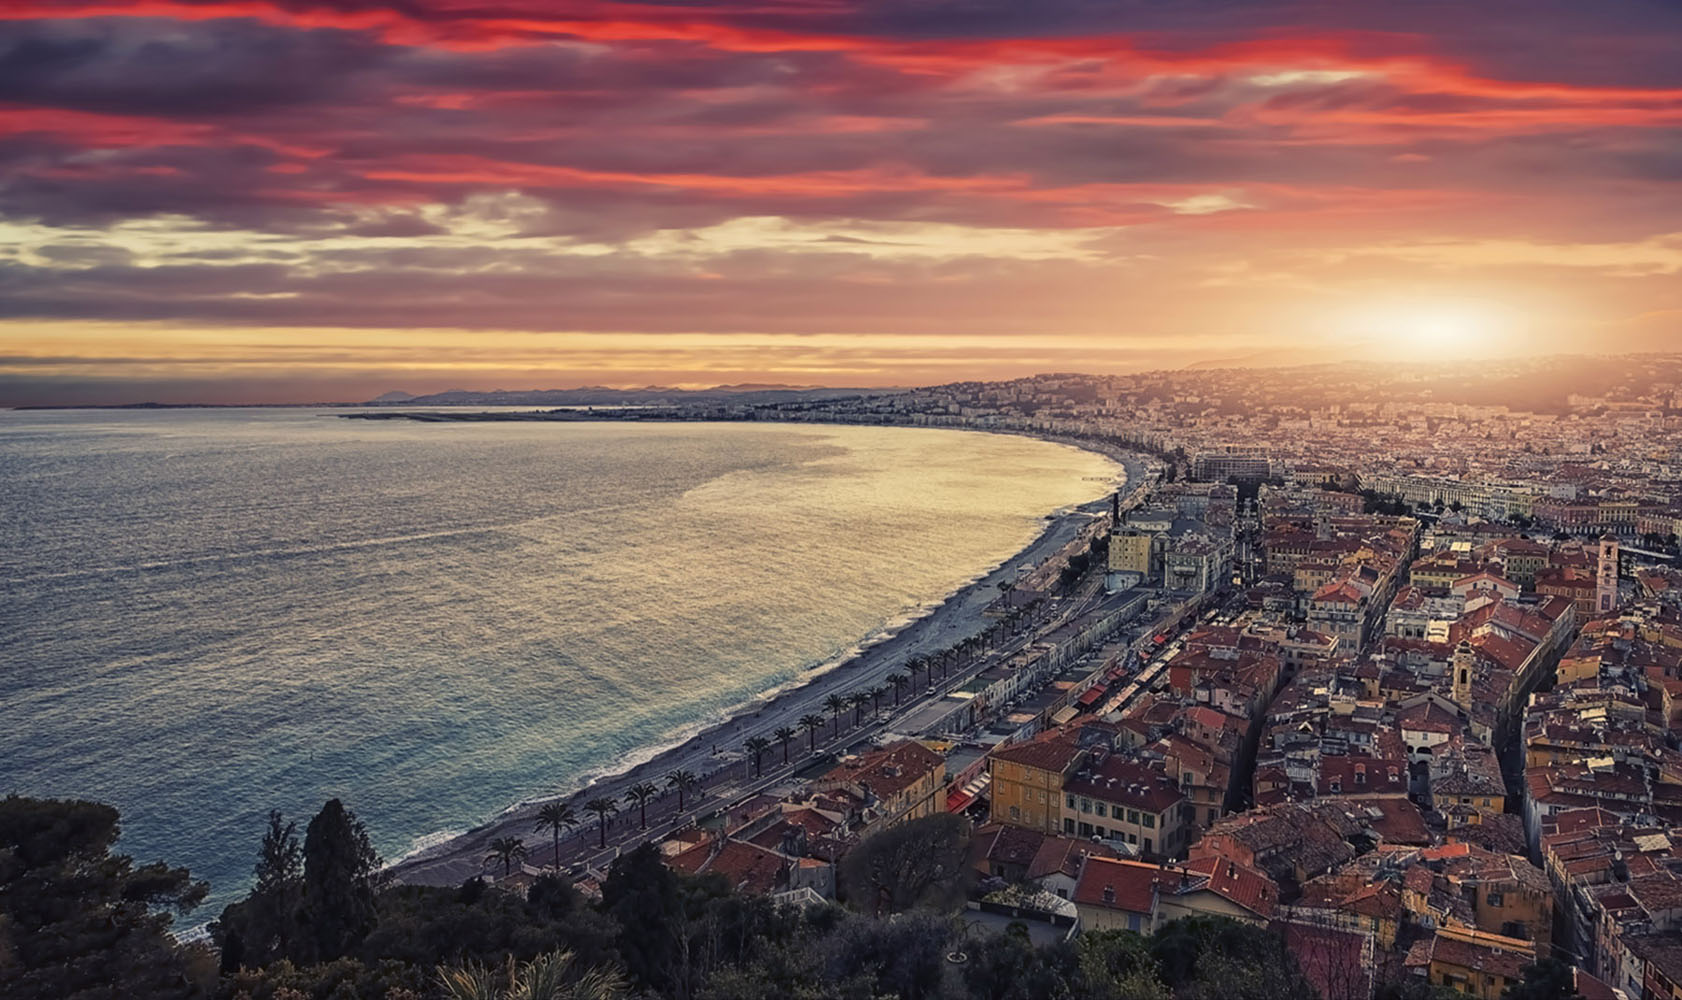 A sunset on the shores of Nice, France